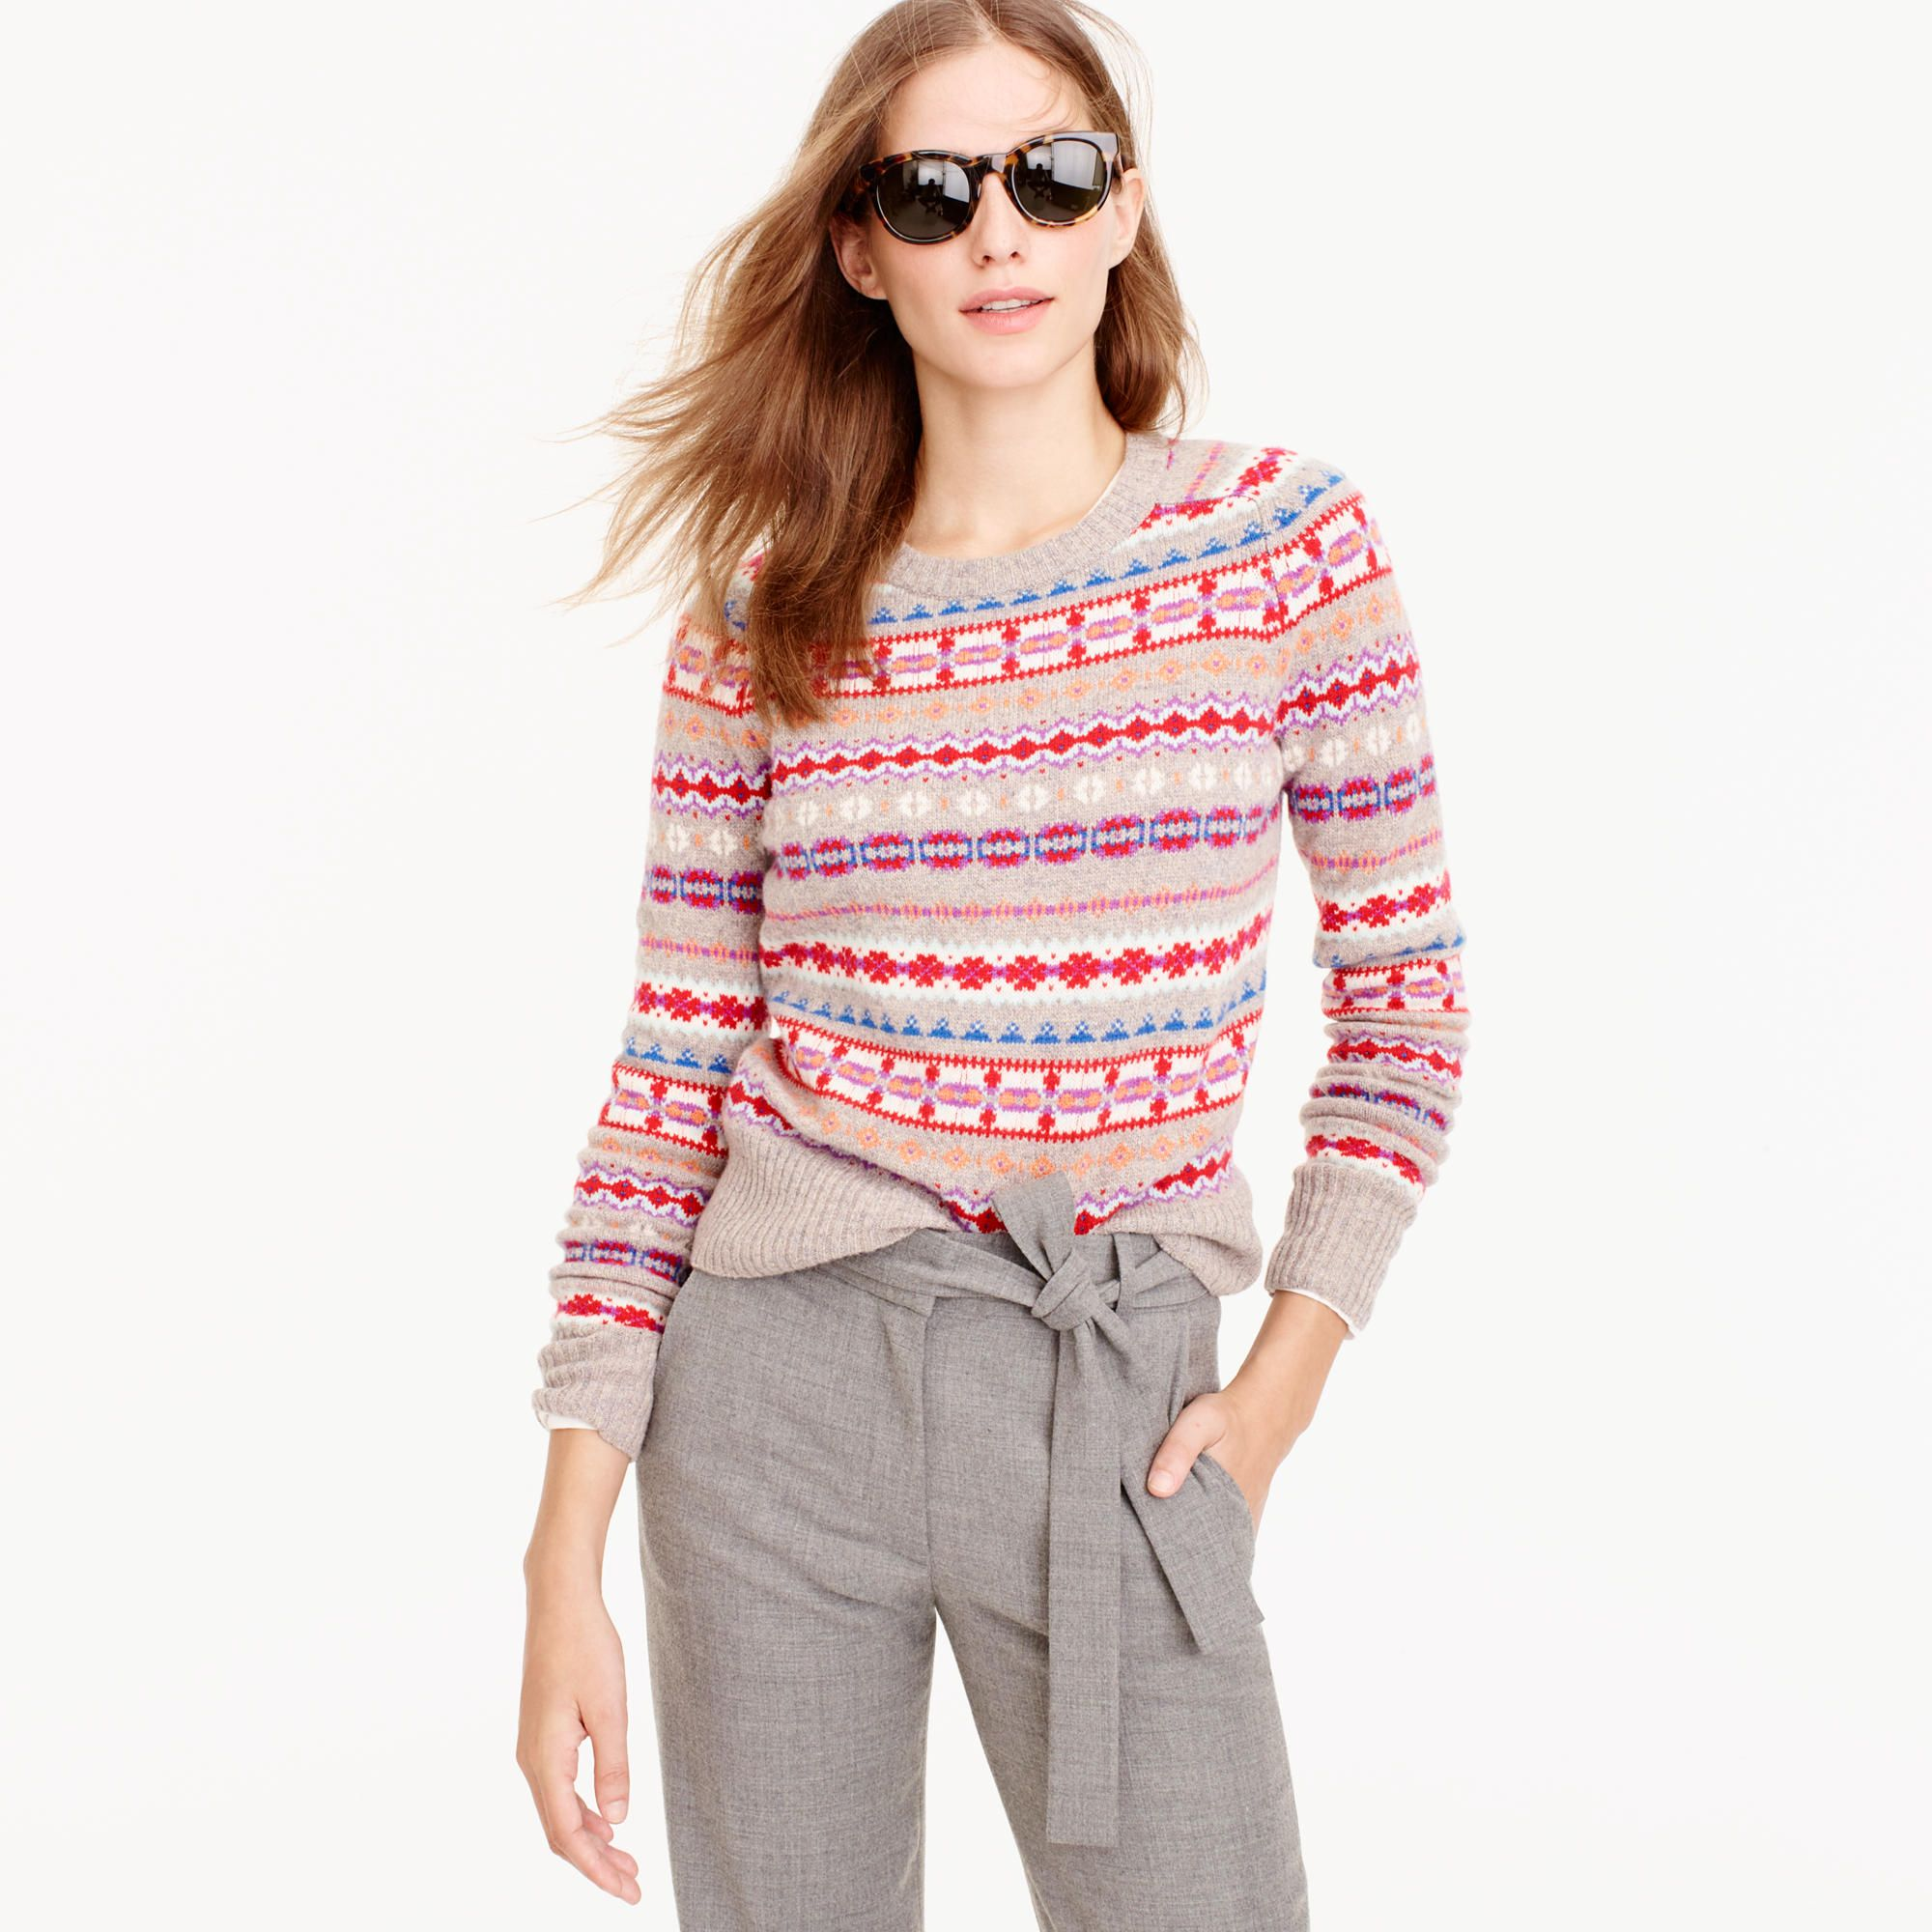 J. Crew Holly sweater in Fair Isle pebble mist | Clothing ...